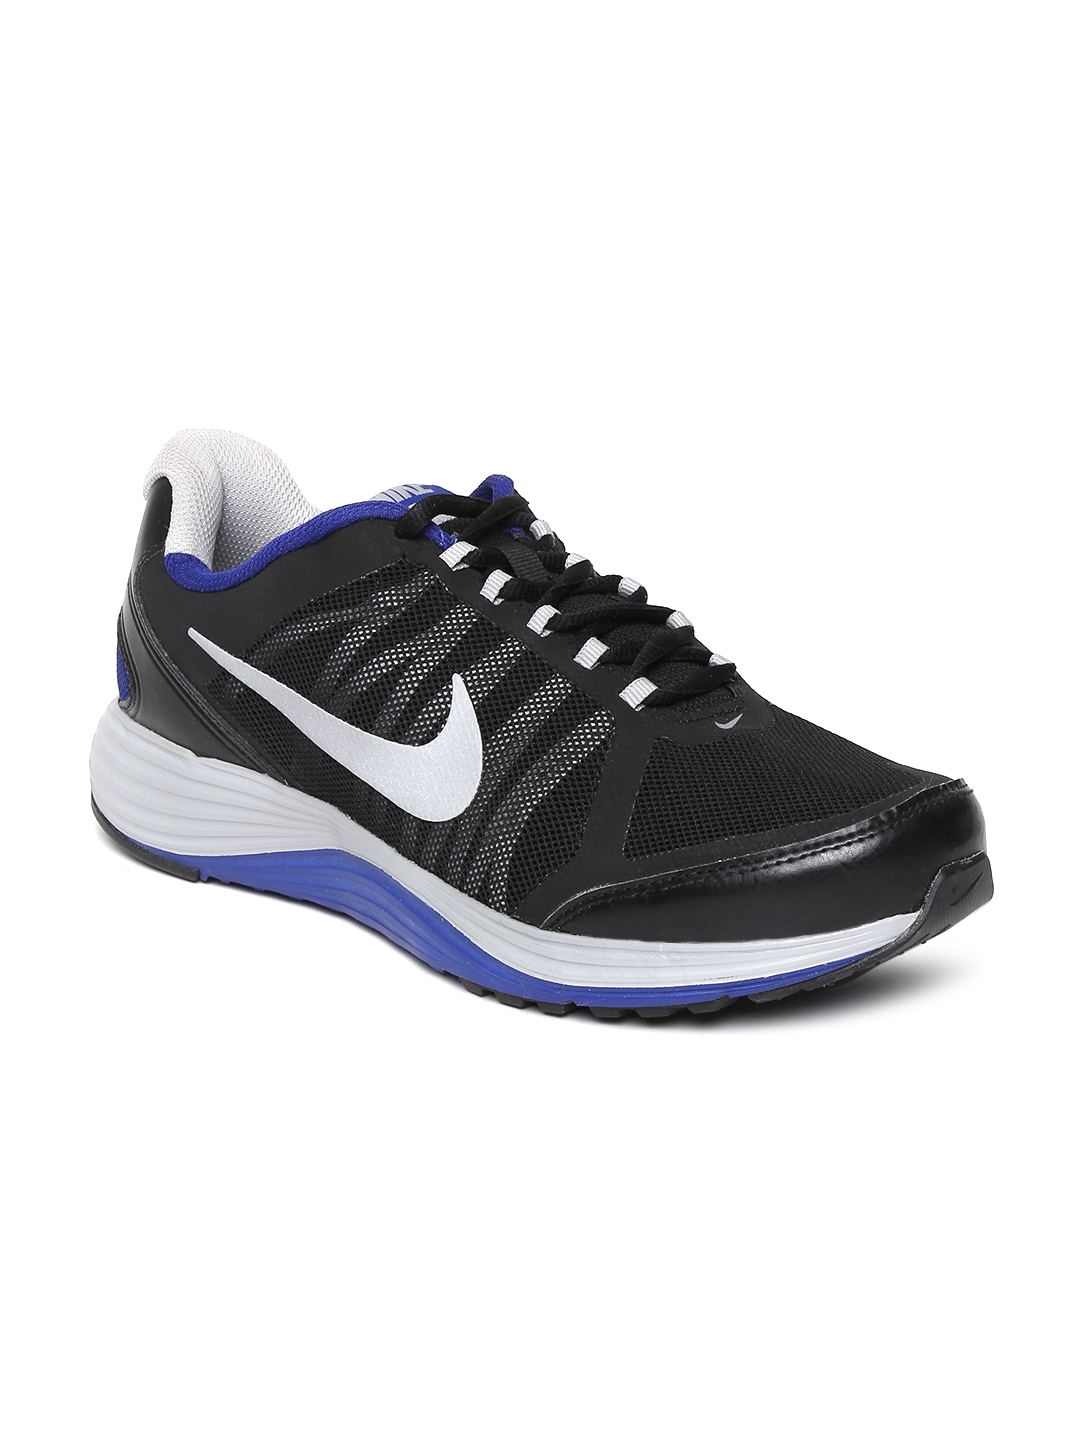 myntra nike black revolve 2 sports shoes 731397 buy